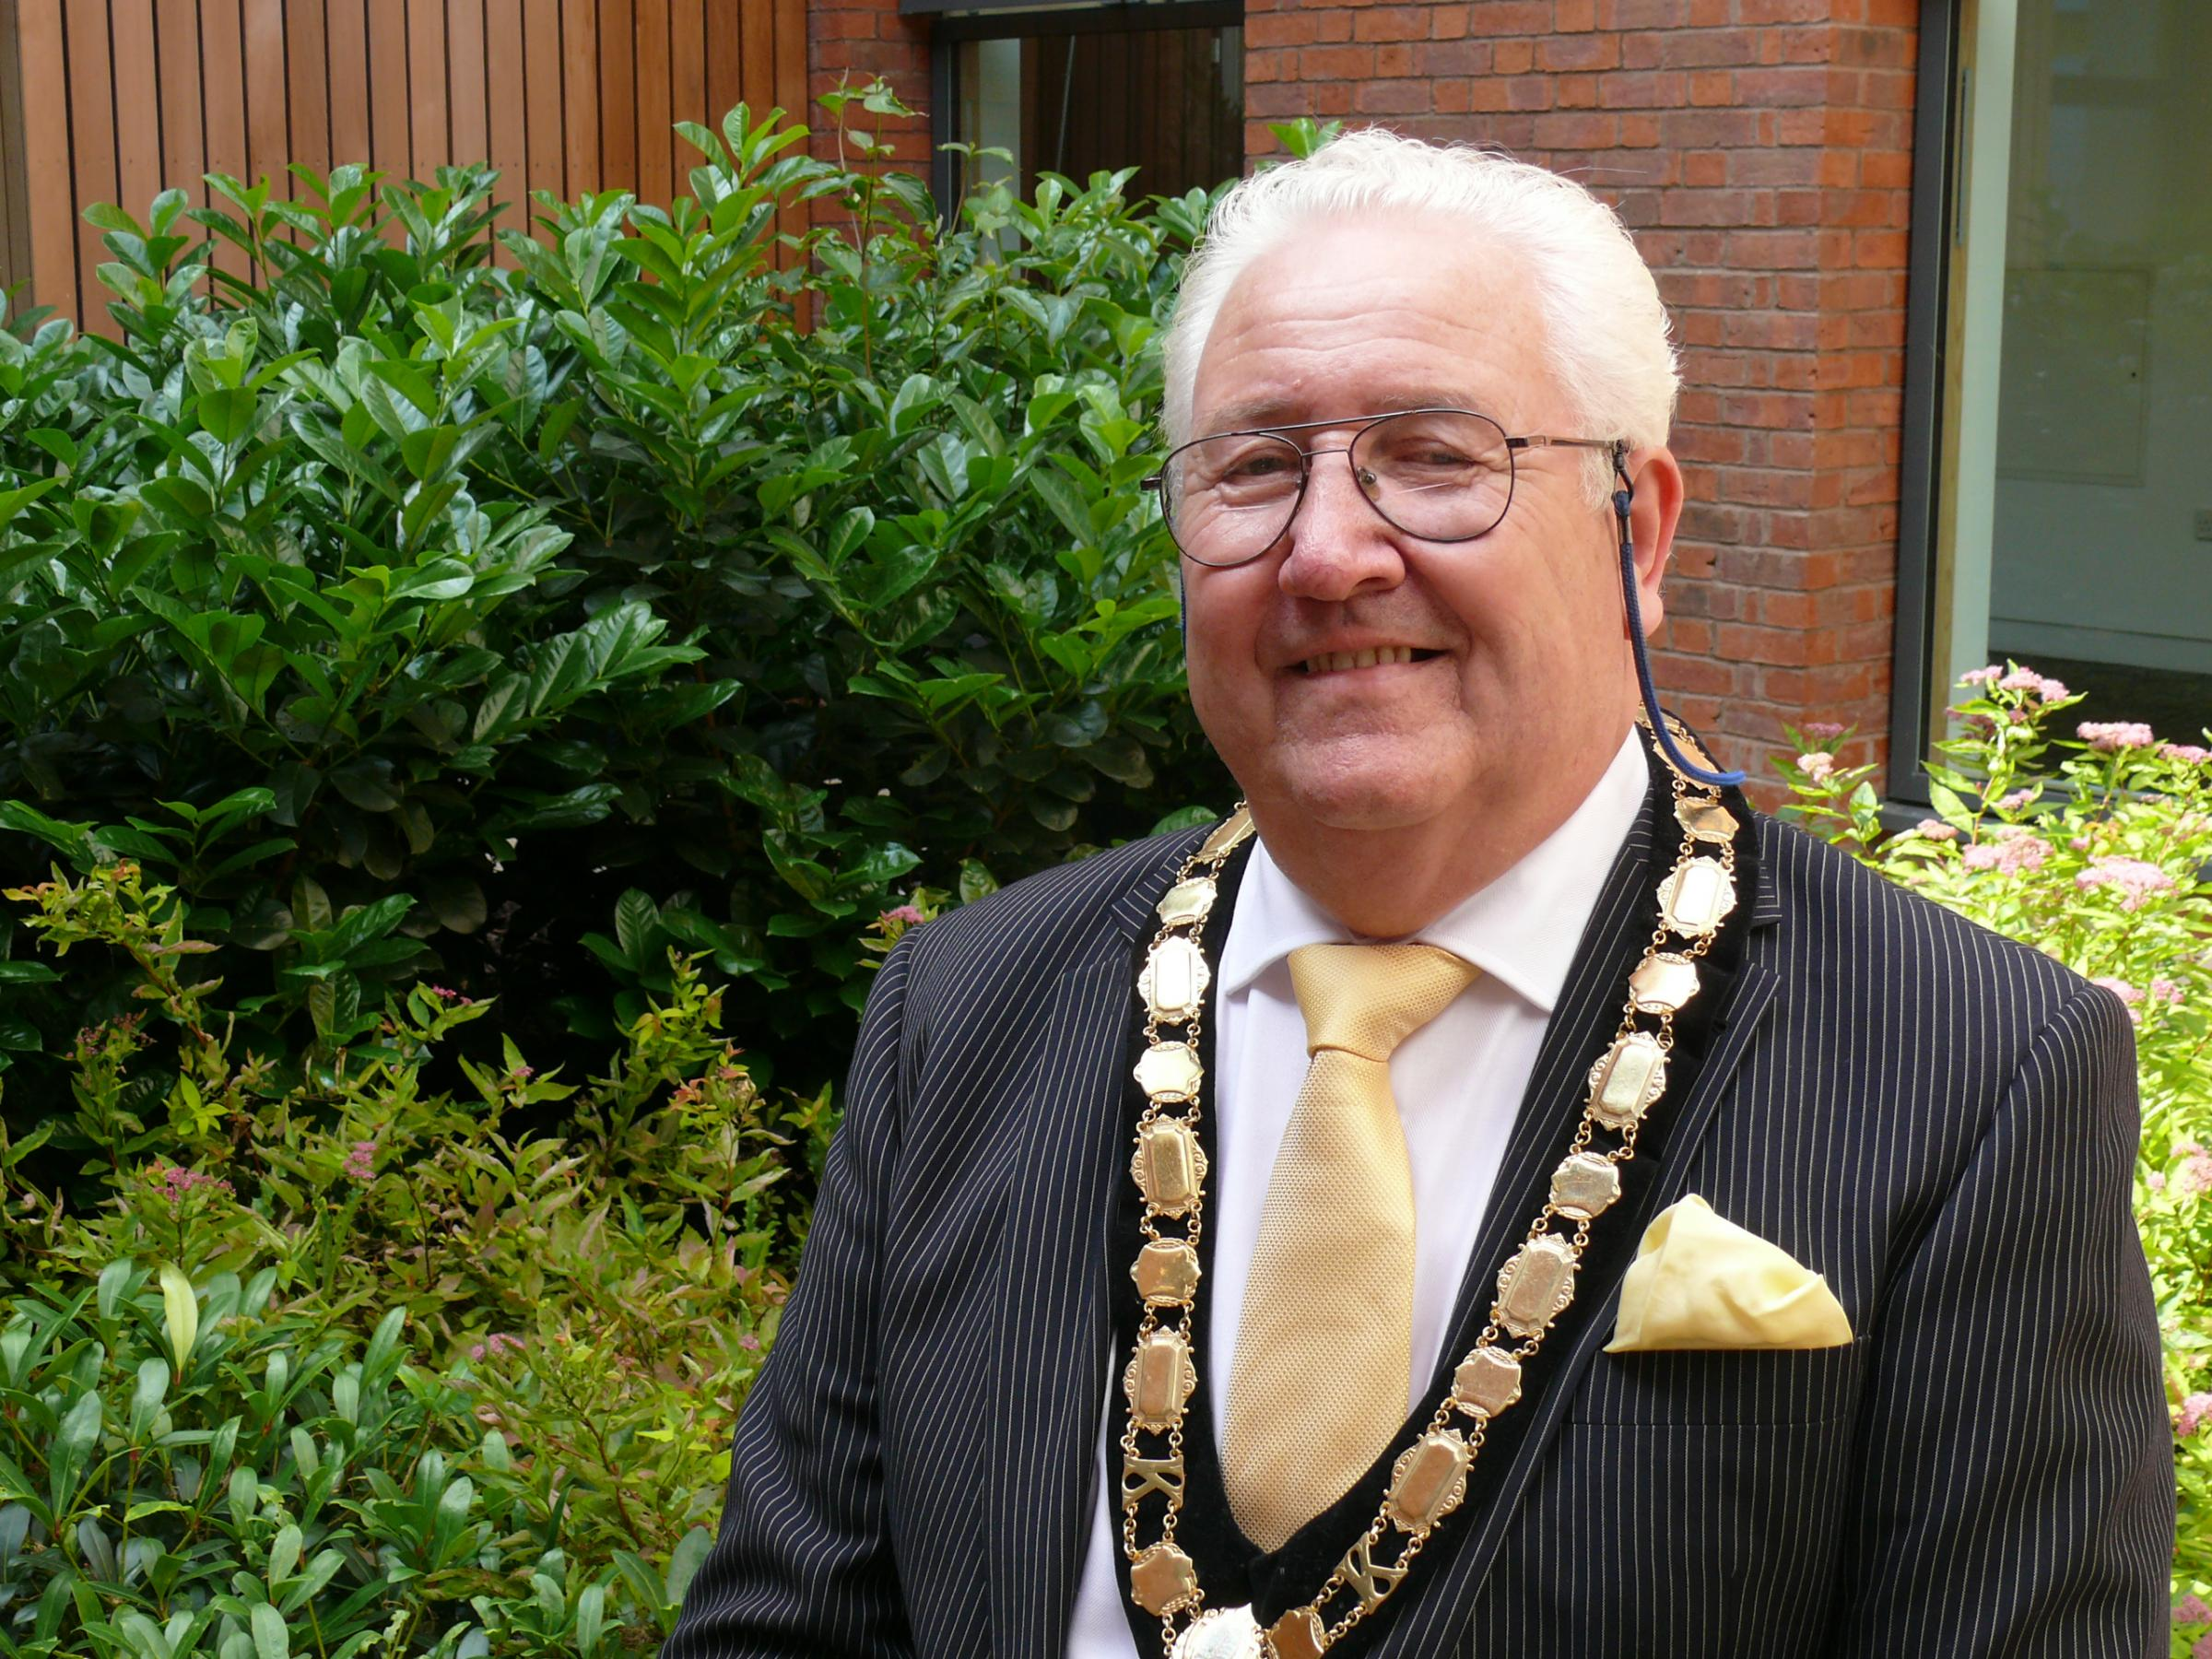 New council chairman aims to be apolitical